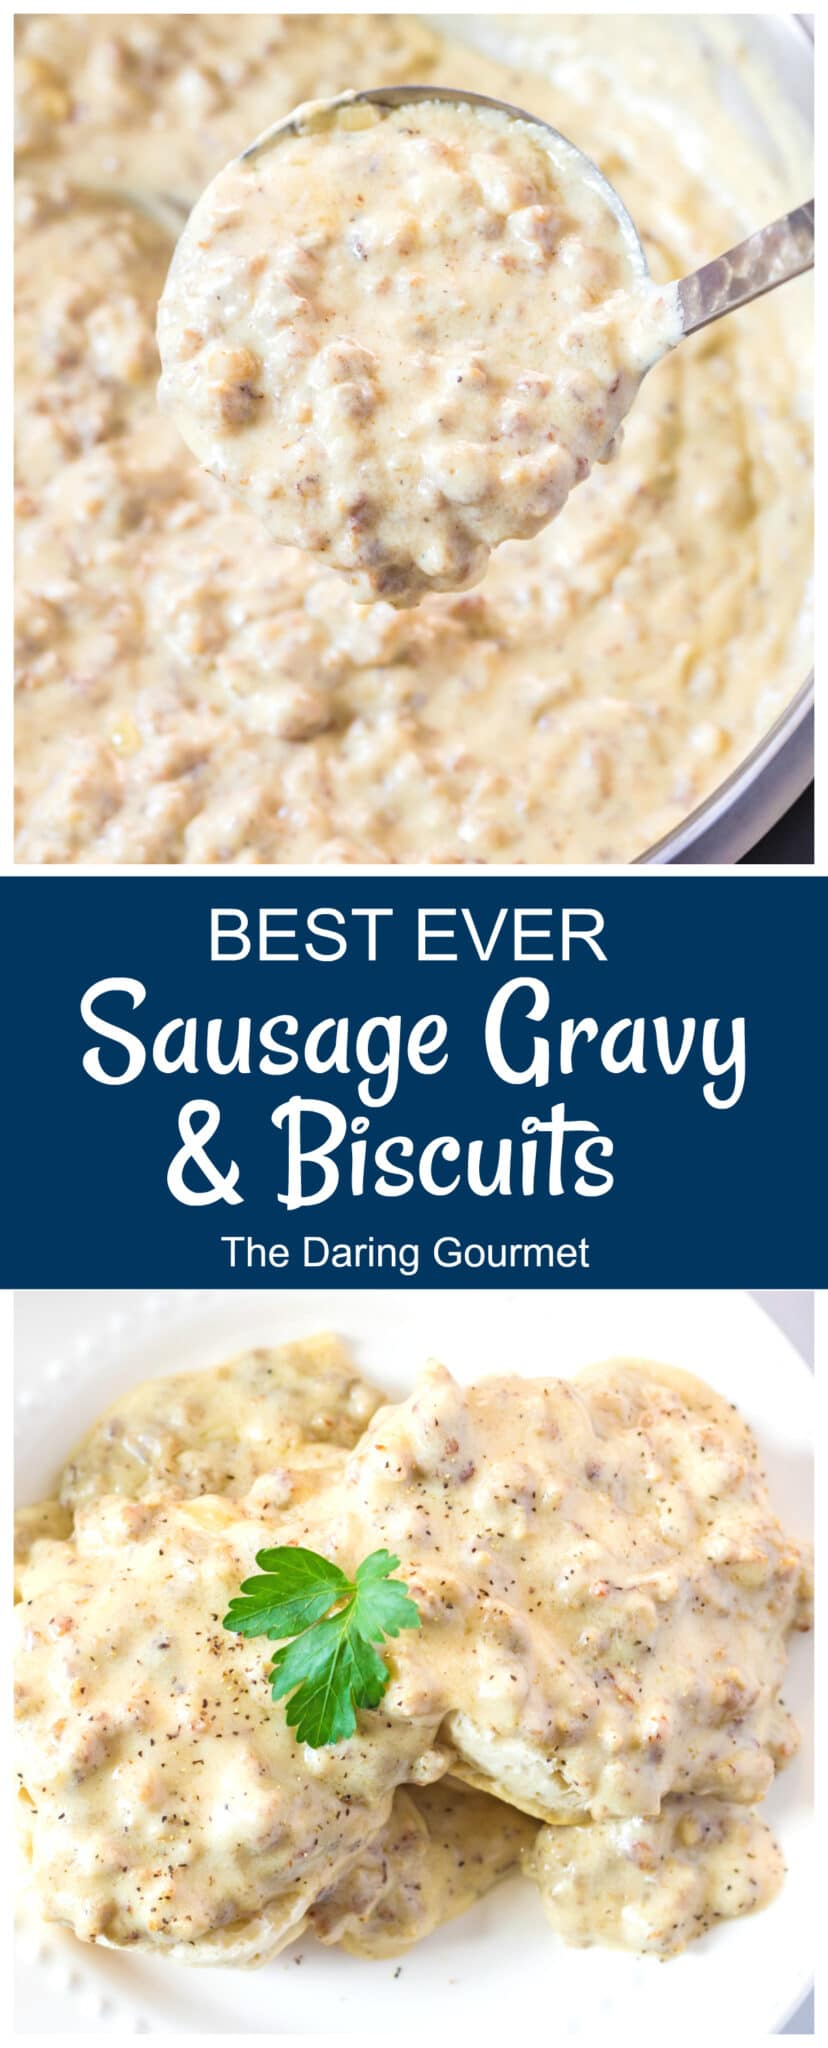 sausage gravy recipe best homemade southern style from scratch buttermilk biscuits